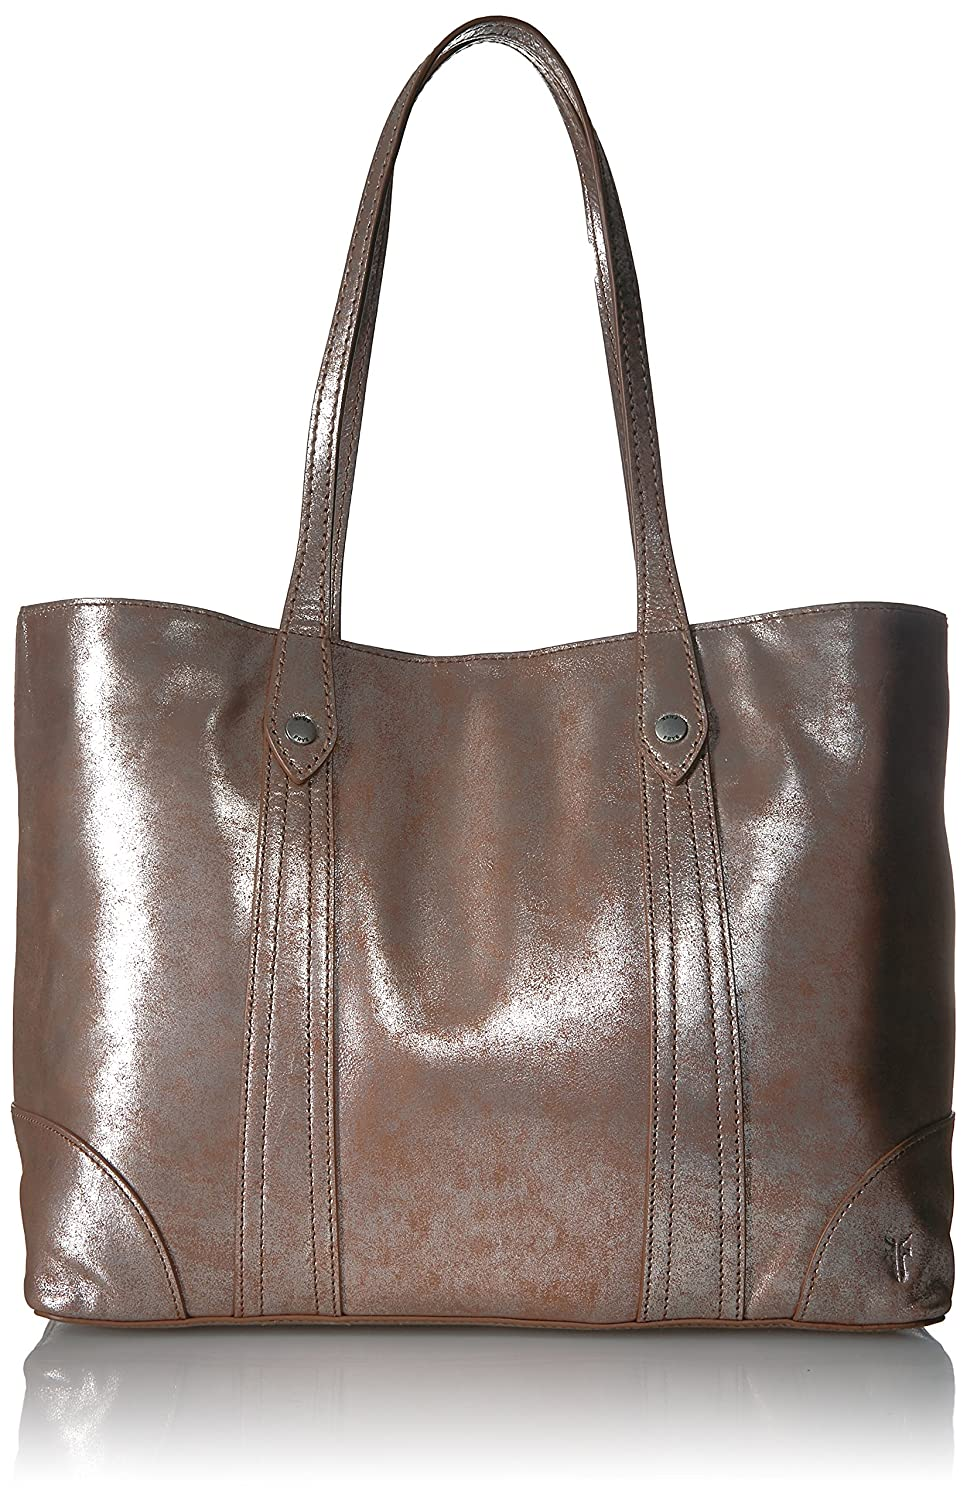 FRYE Melissa Shopper Tote Leather Handbag Beige DB181